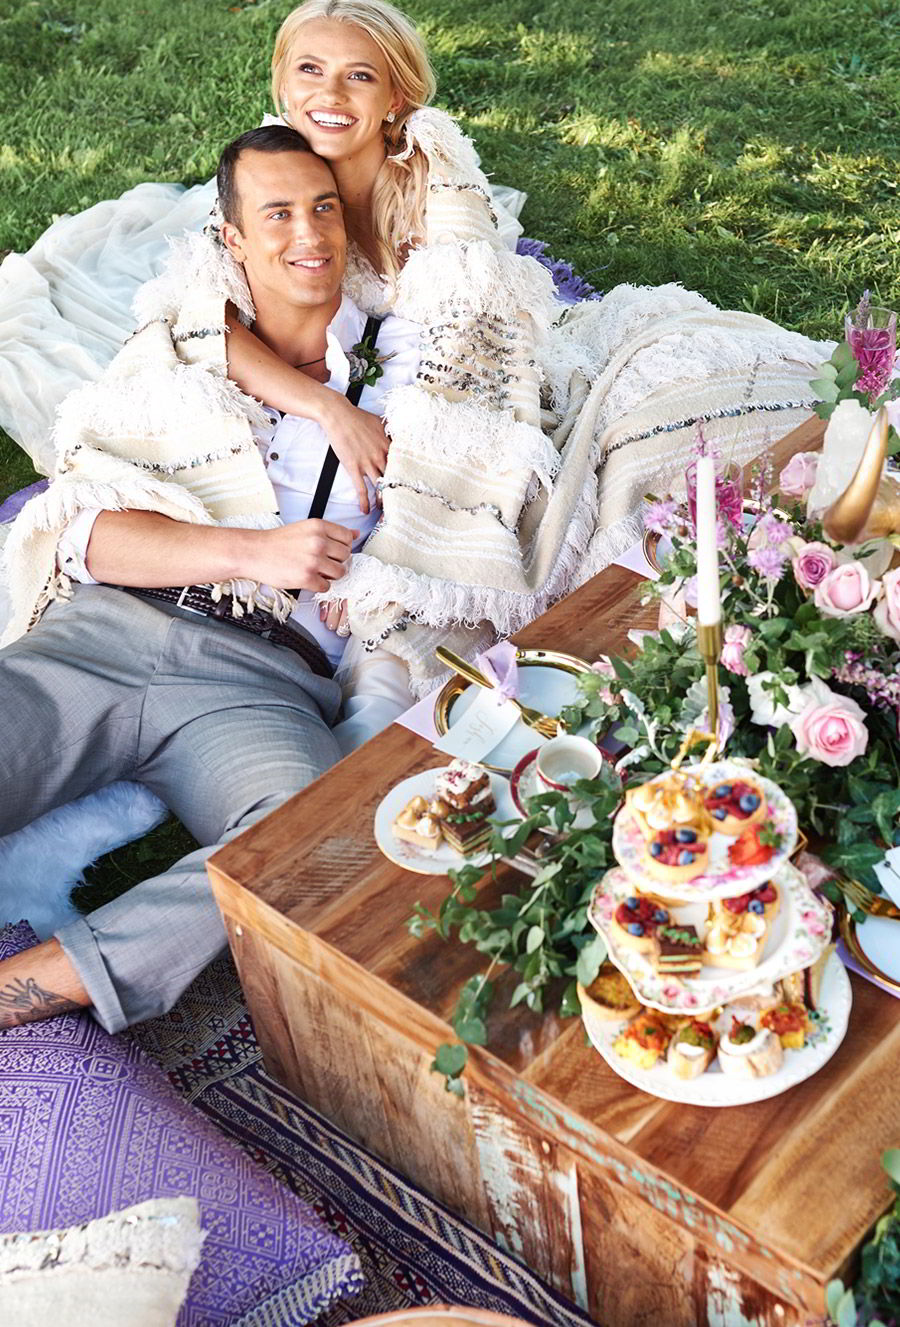 adorn invitation romantic bohemian luxury purrple gold wedding inspiration photo shoot tall